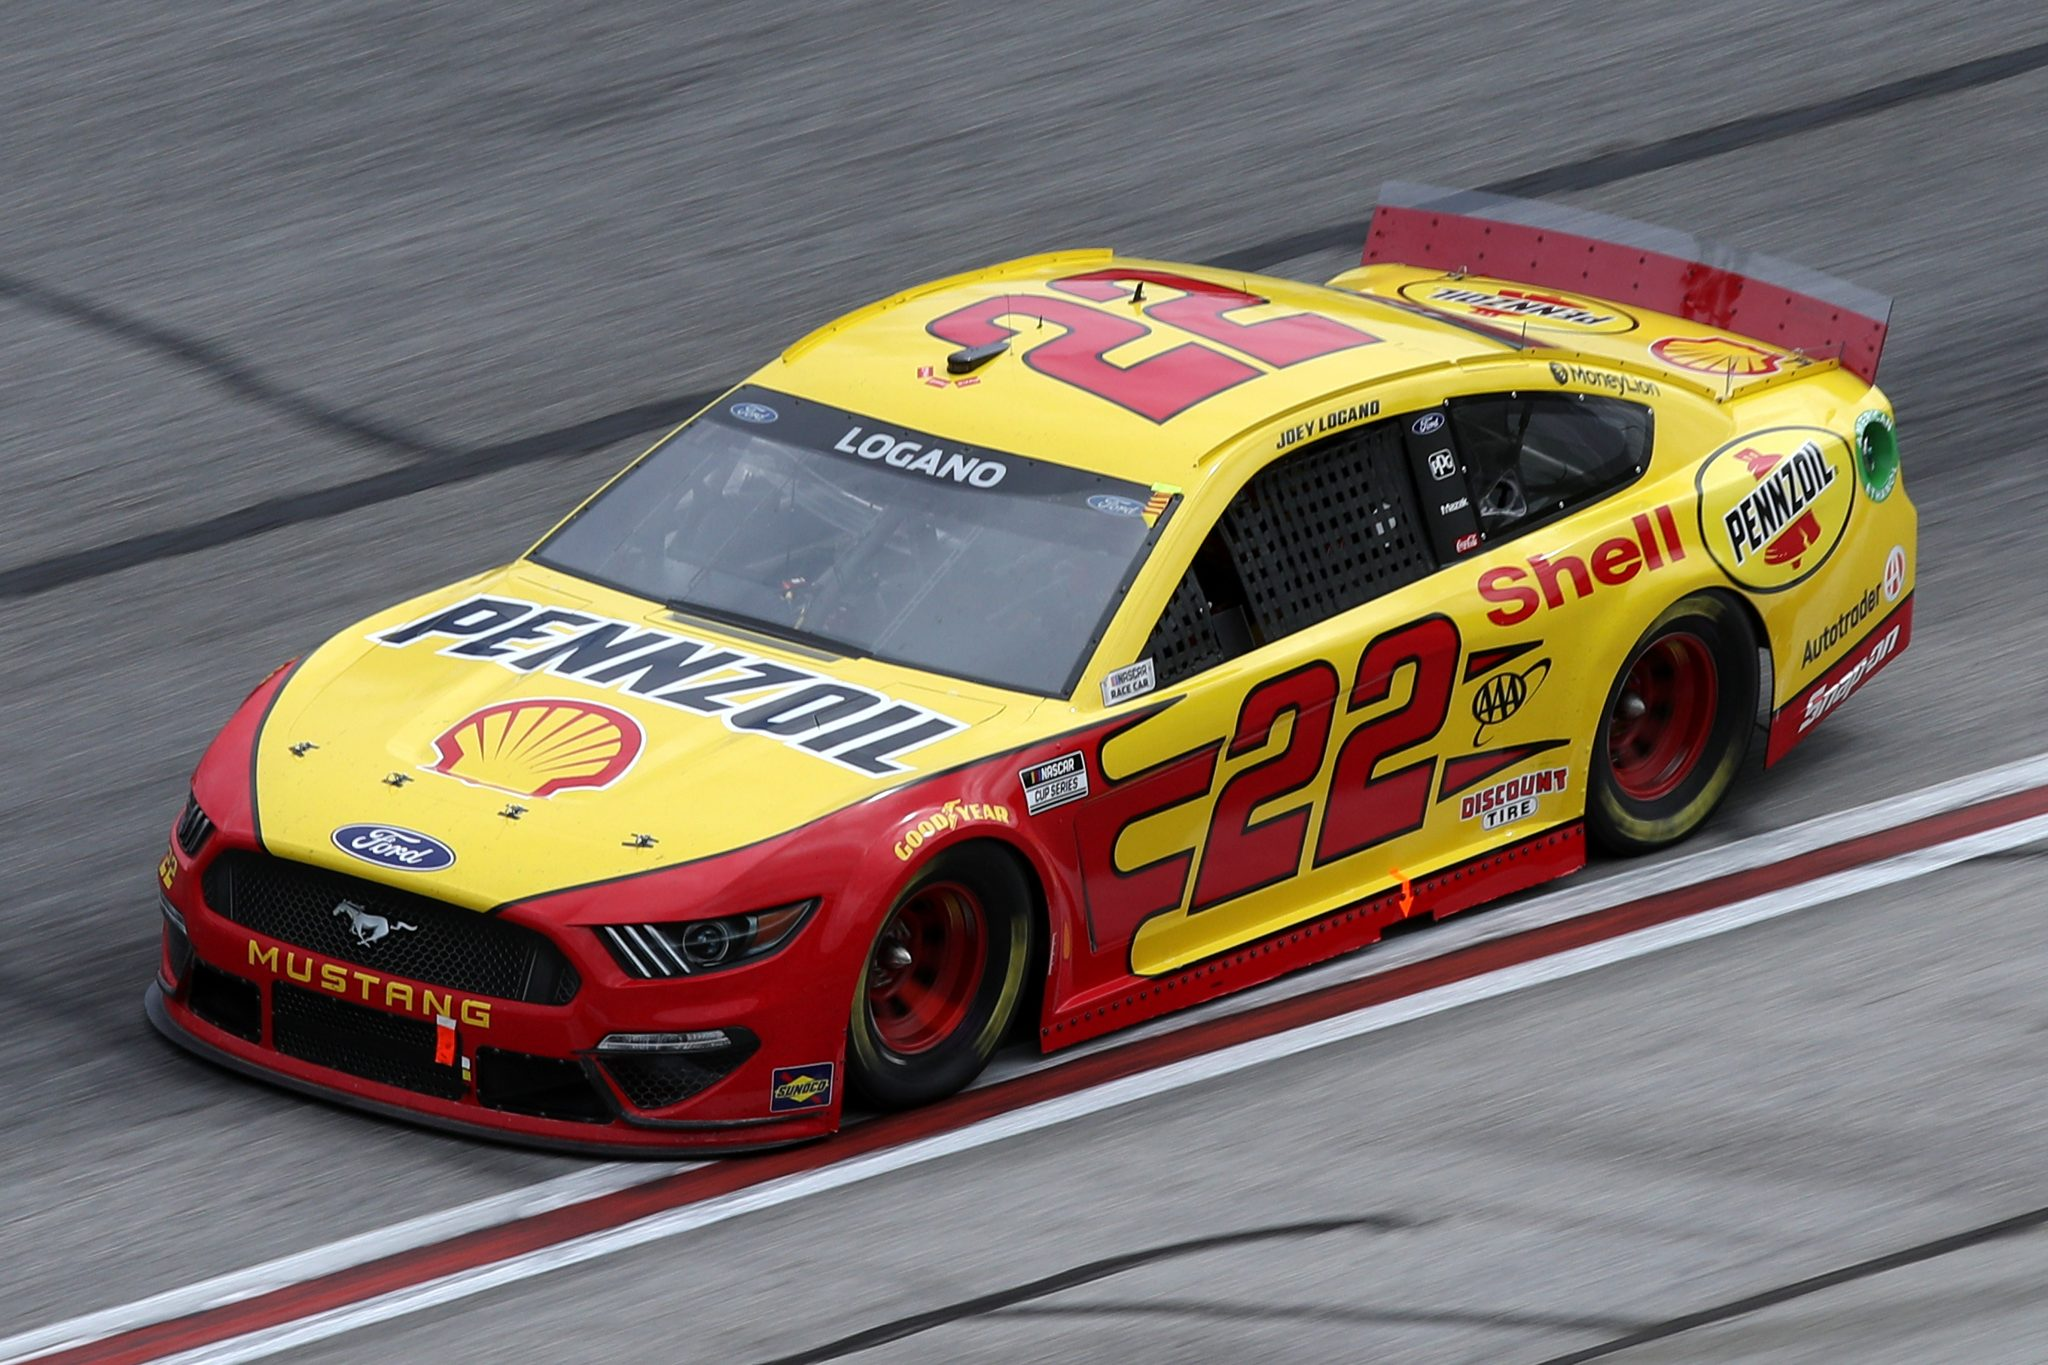 HAMPTON, GEORGIA - MARCH 21: Joey Logano, driver of the #22 Shell Pennzoil Ford, drives during the NASCAR Cup Series Folds of Honor QuikTrip 500 at Atlanta Motor Speedway on March 21, 2021 in Hampton, Georgia. (Photo by Sean Gardner/Getty Images) | Getty Images